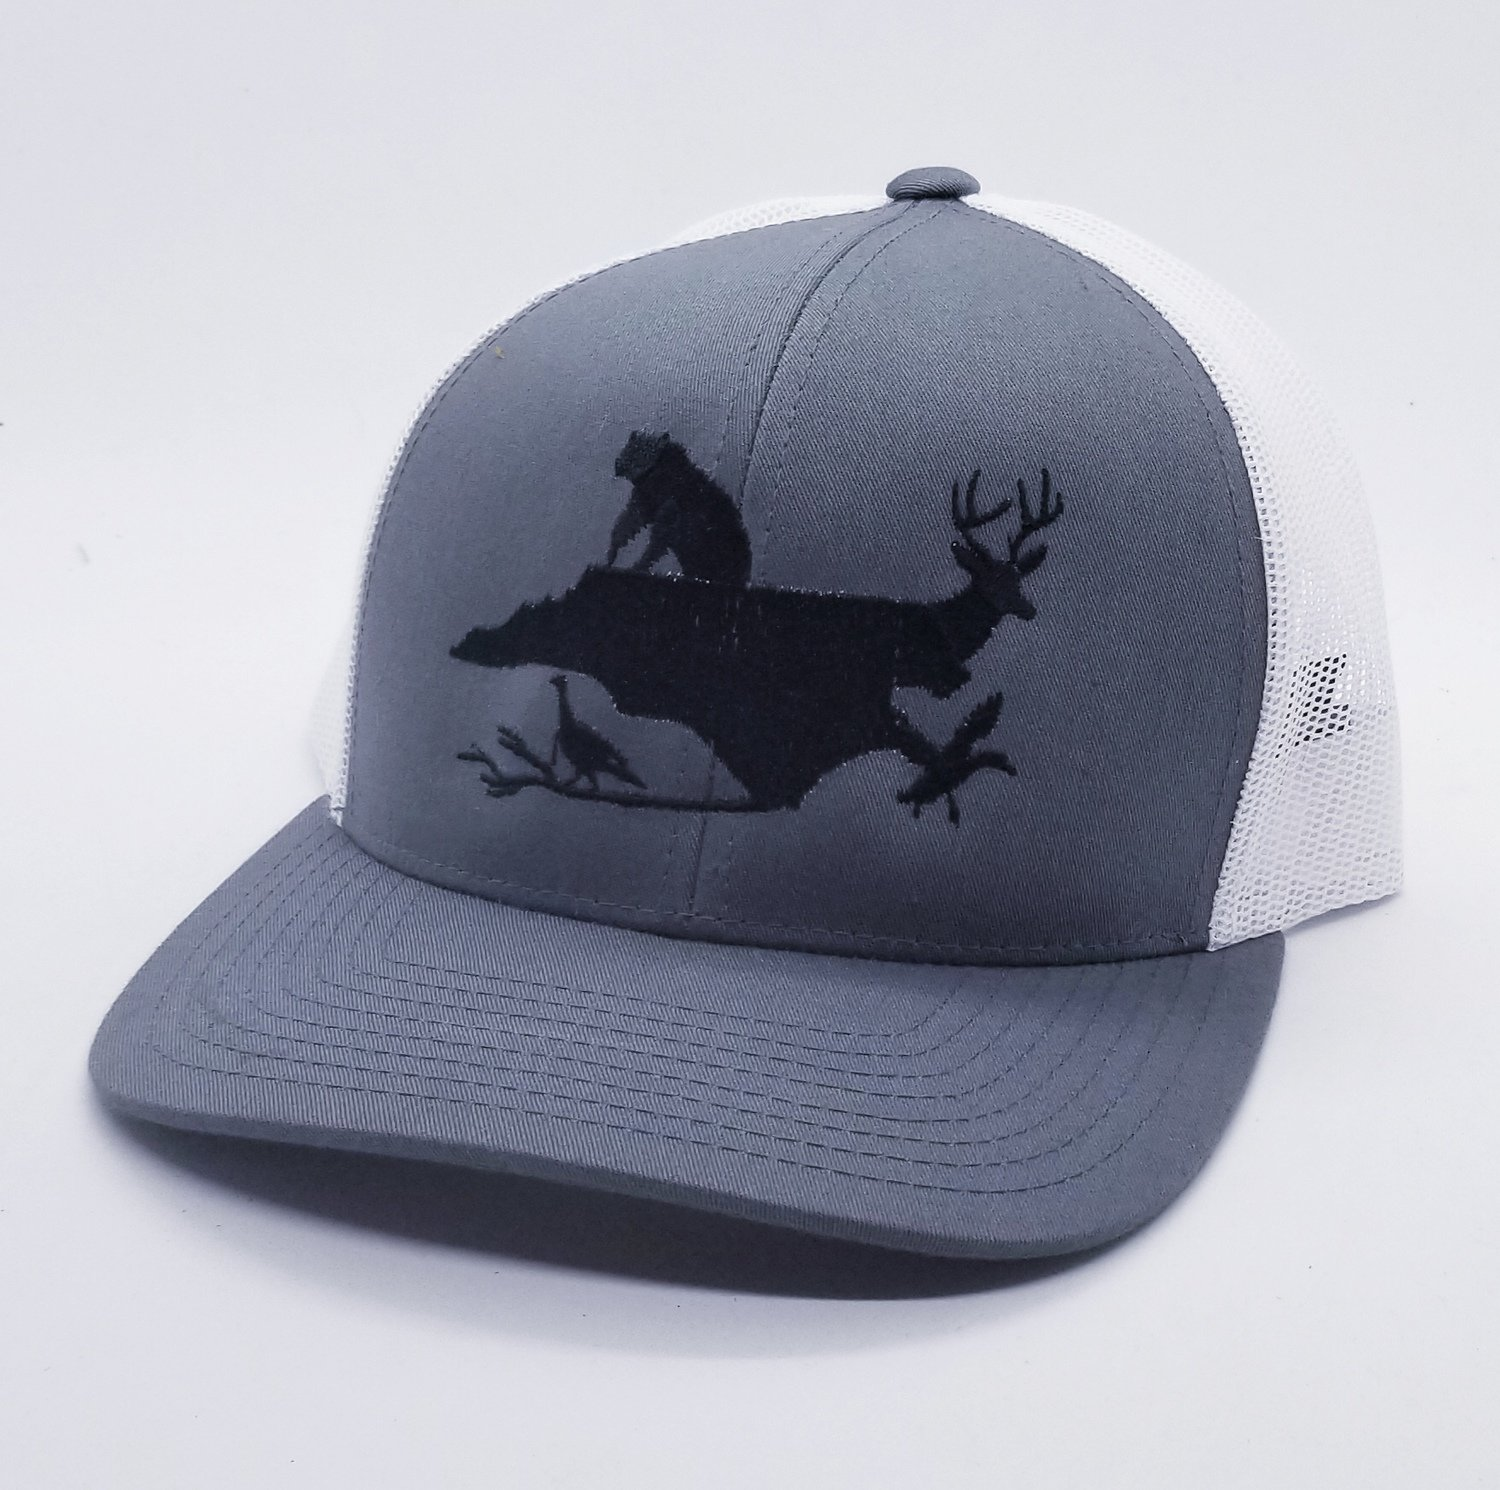 NC Wildlife Adjustable Hat - Available in 6 Colors!